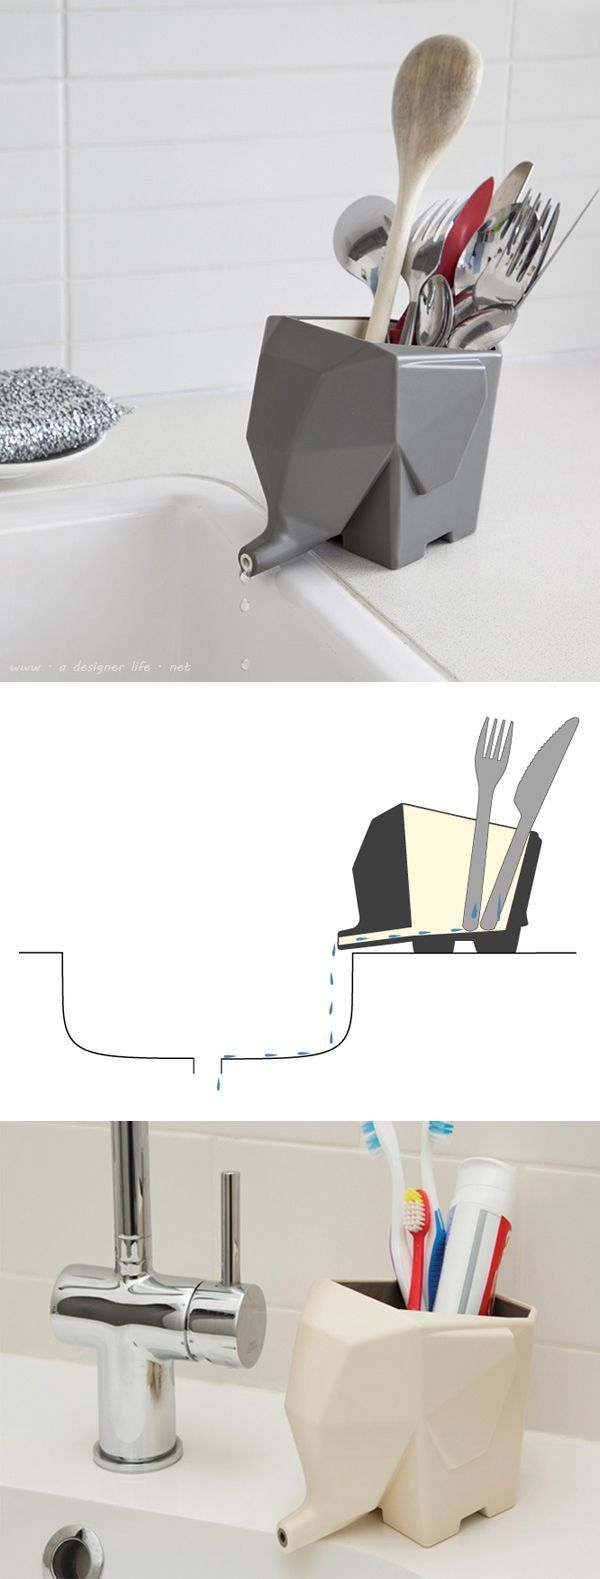 25 best ideas about toothbrush holders on pinterest toothpaste holder kids toothbrush holder - Keep toothpaste kitchen ...